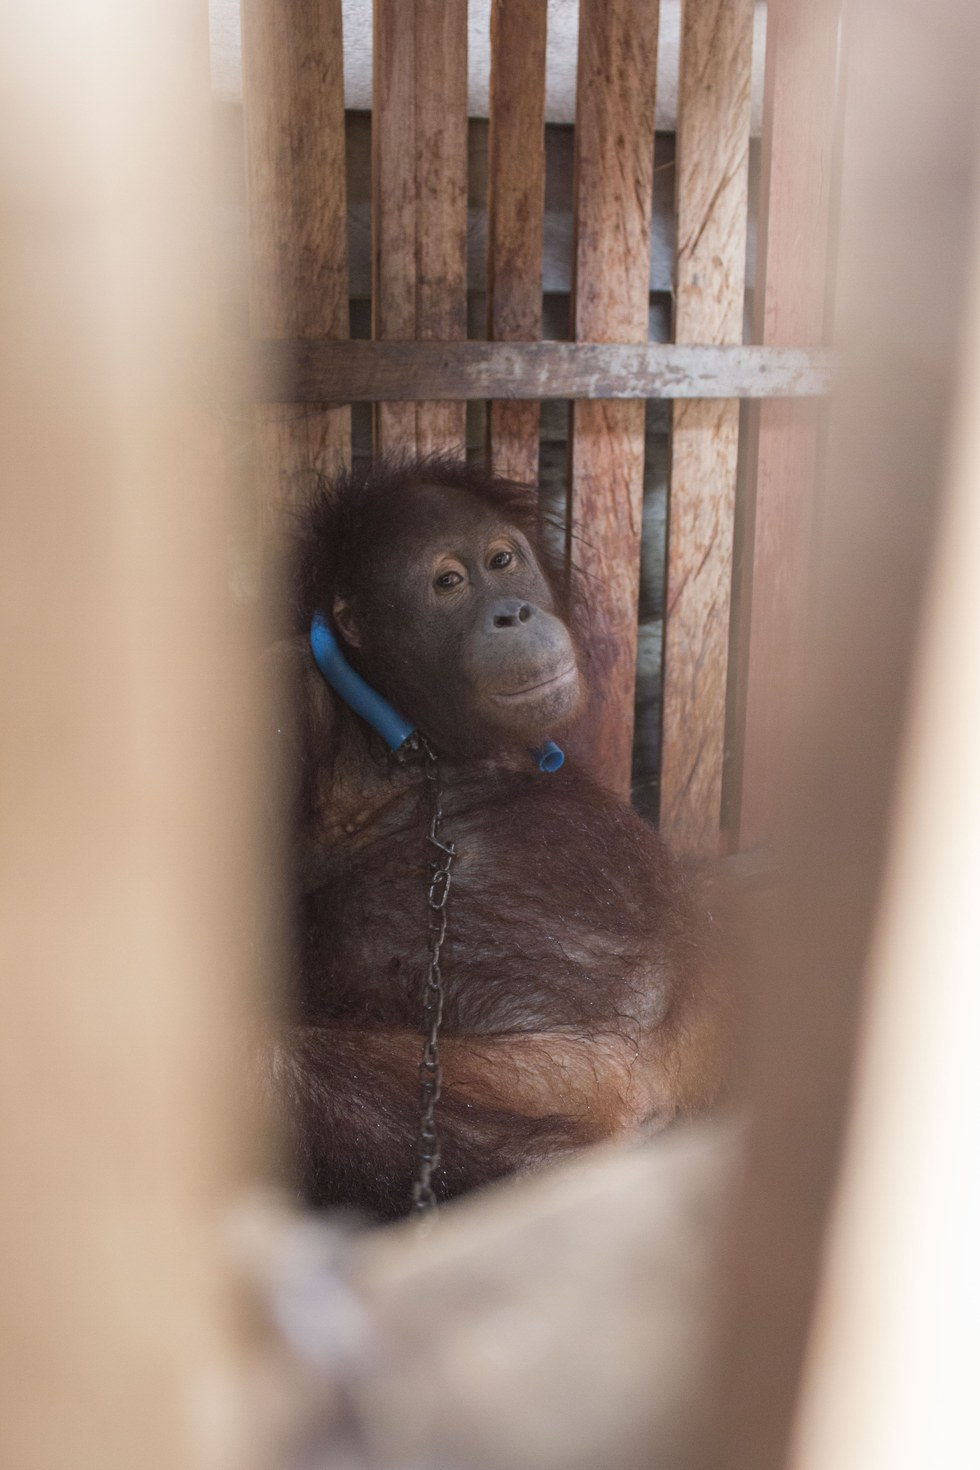 Bornean orangutan locked up inside a crate in Indonesia